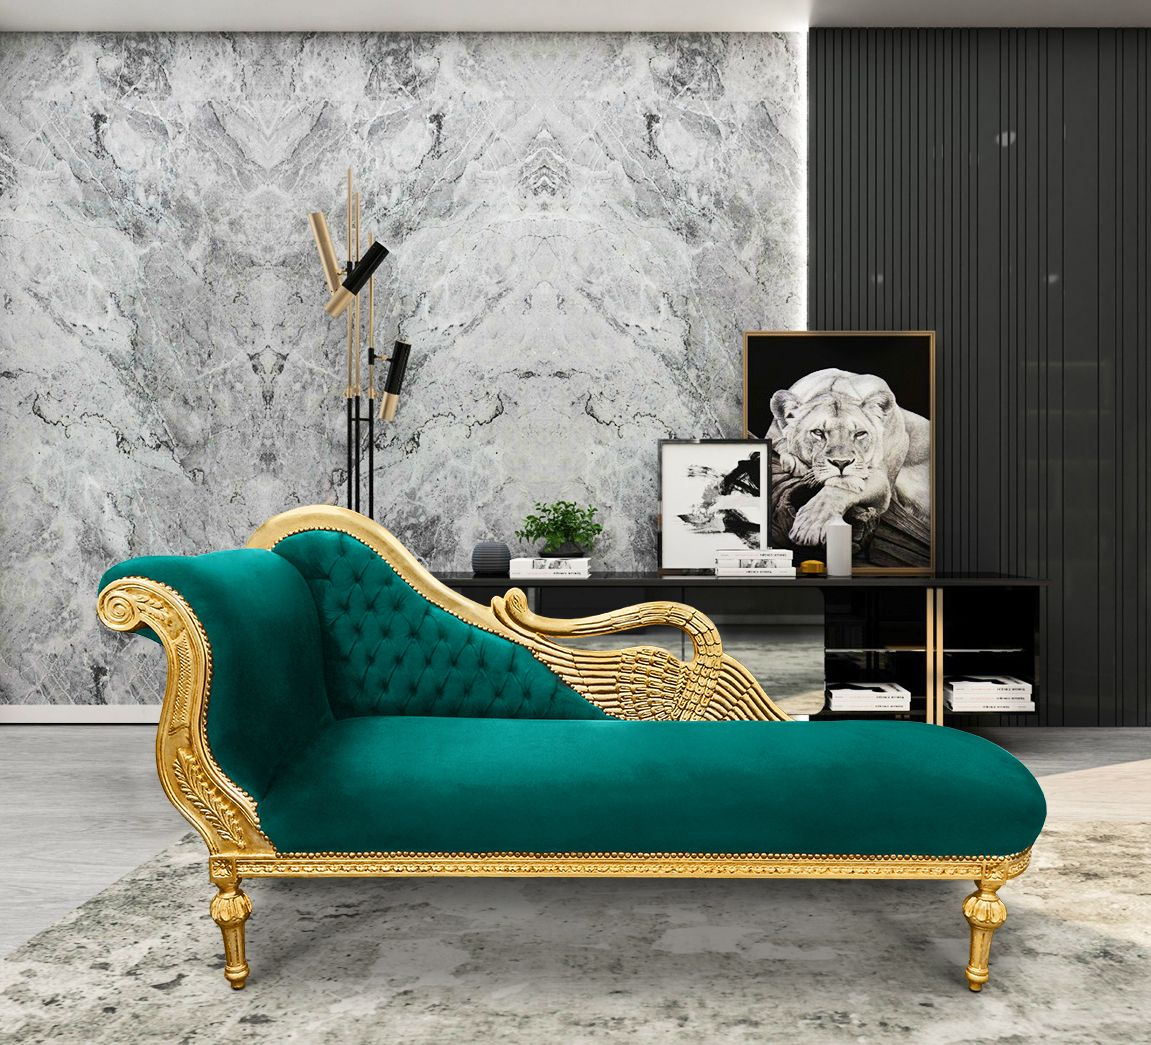 Grand Chaise Longue With Swan Fabric Green Velvet And Gold Wood Green Velvet Fabric Chaise Baroque Furniture